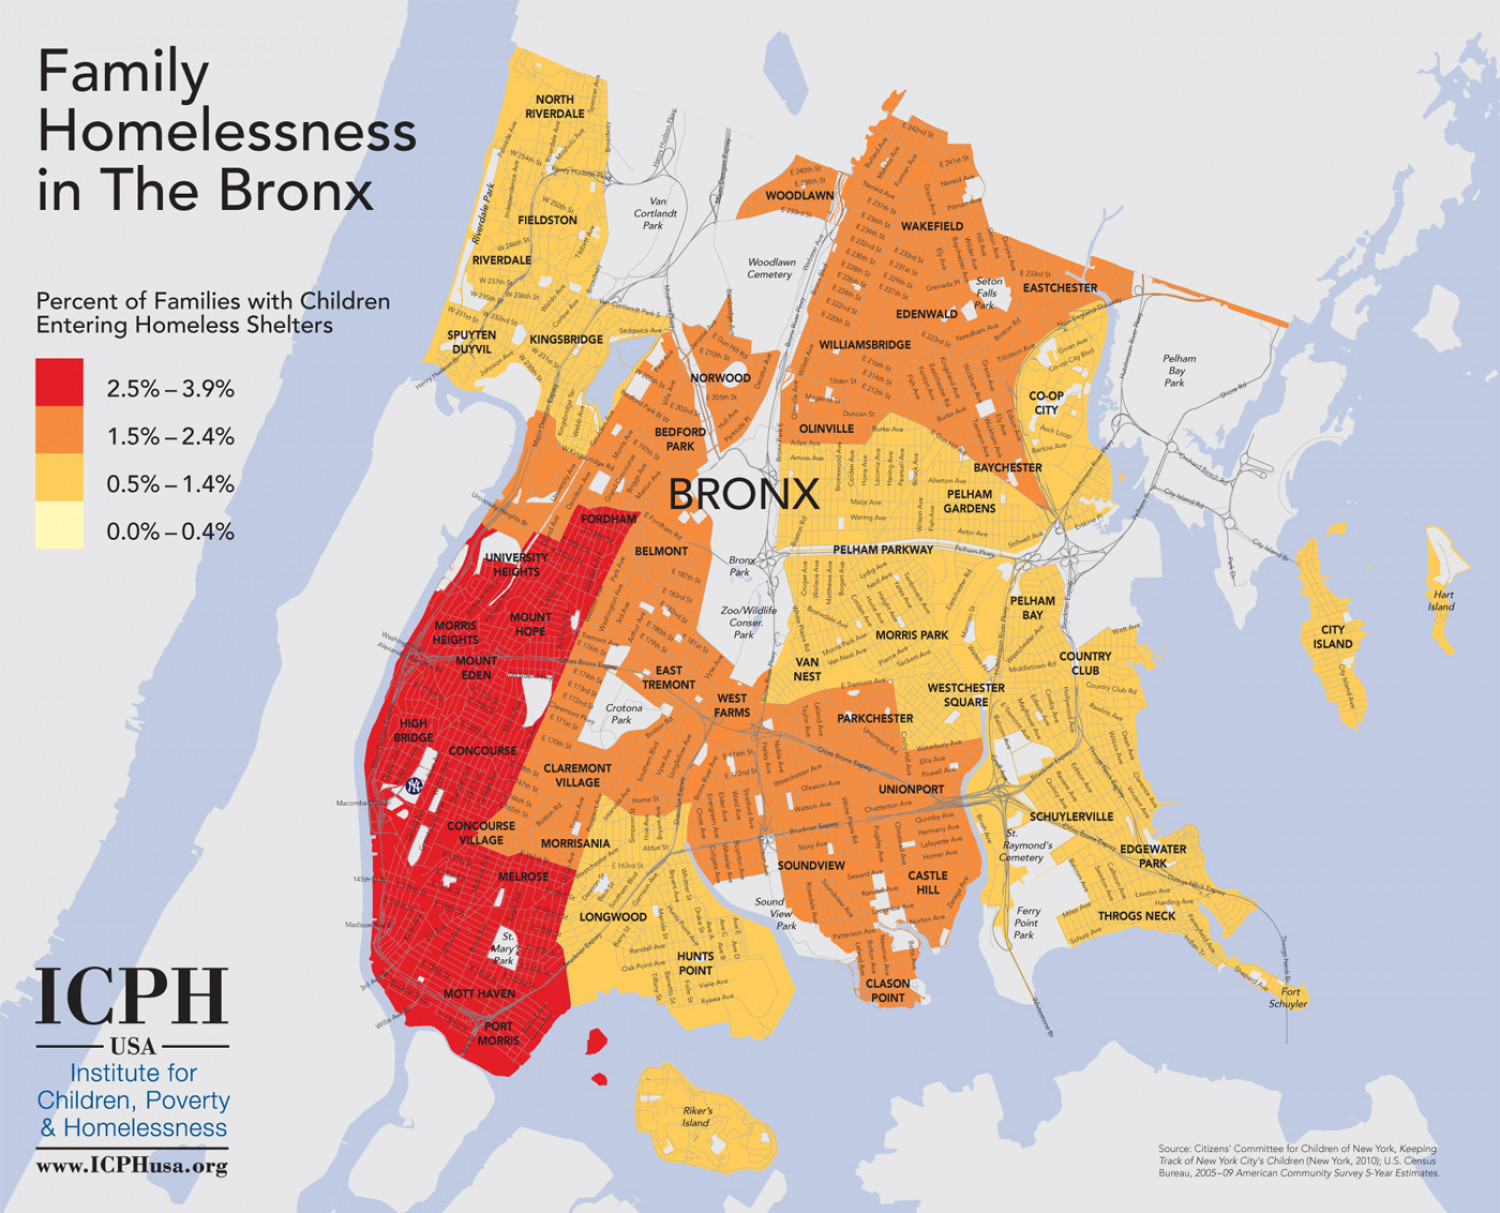 Family Homelessness in the Bronx Infographic